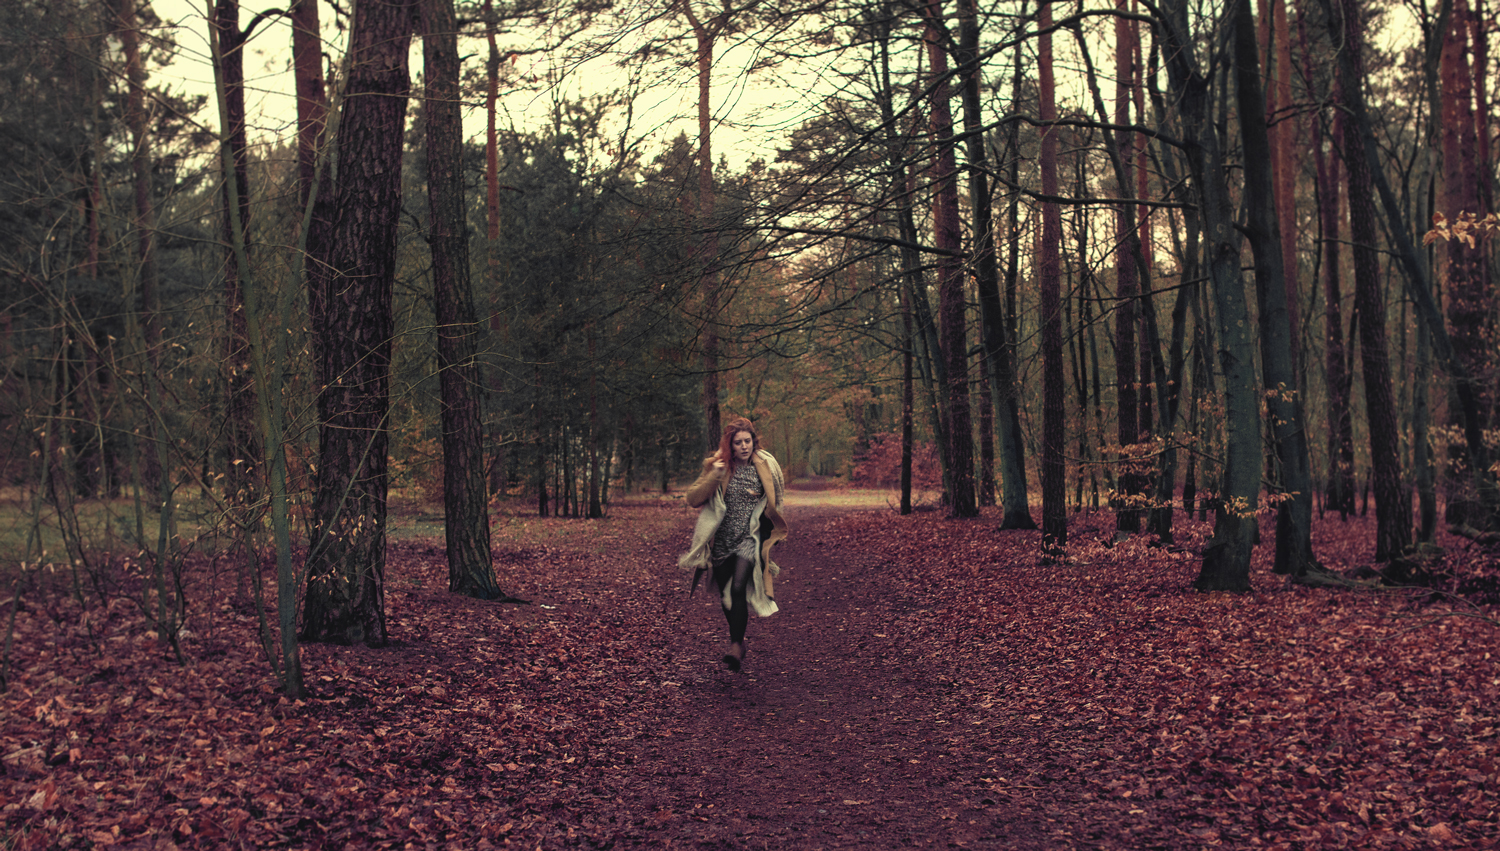 girl red hair red leaves forest running bur cant see way out